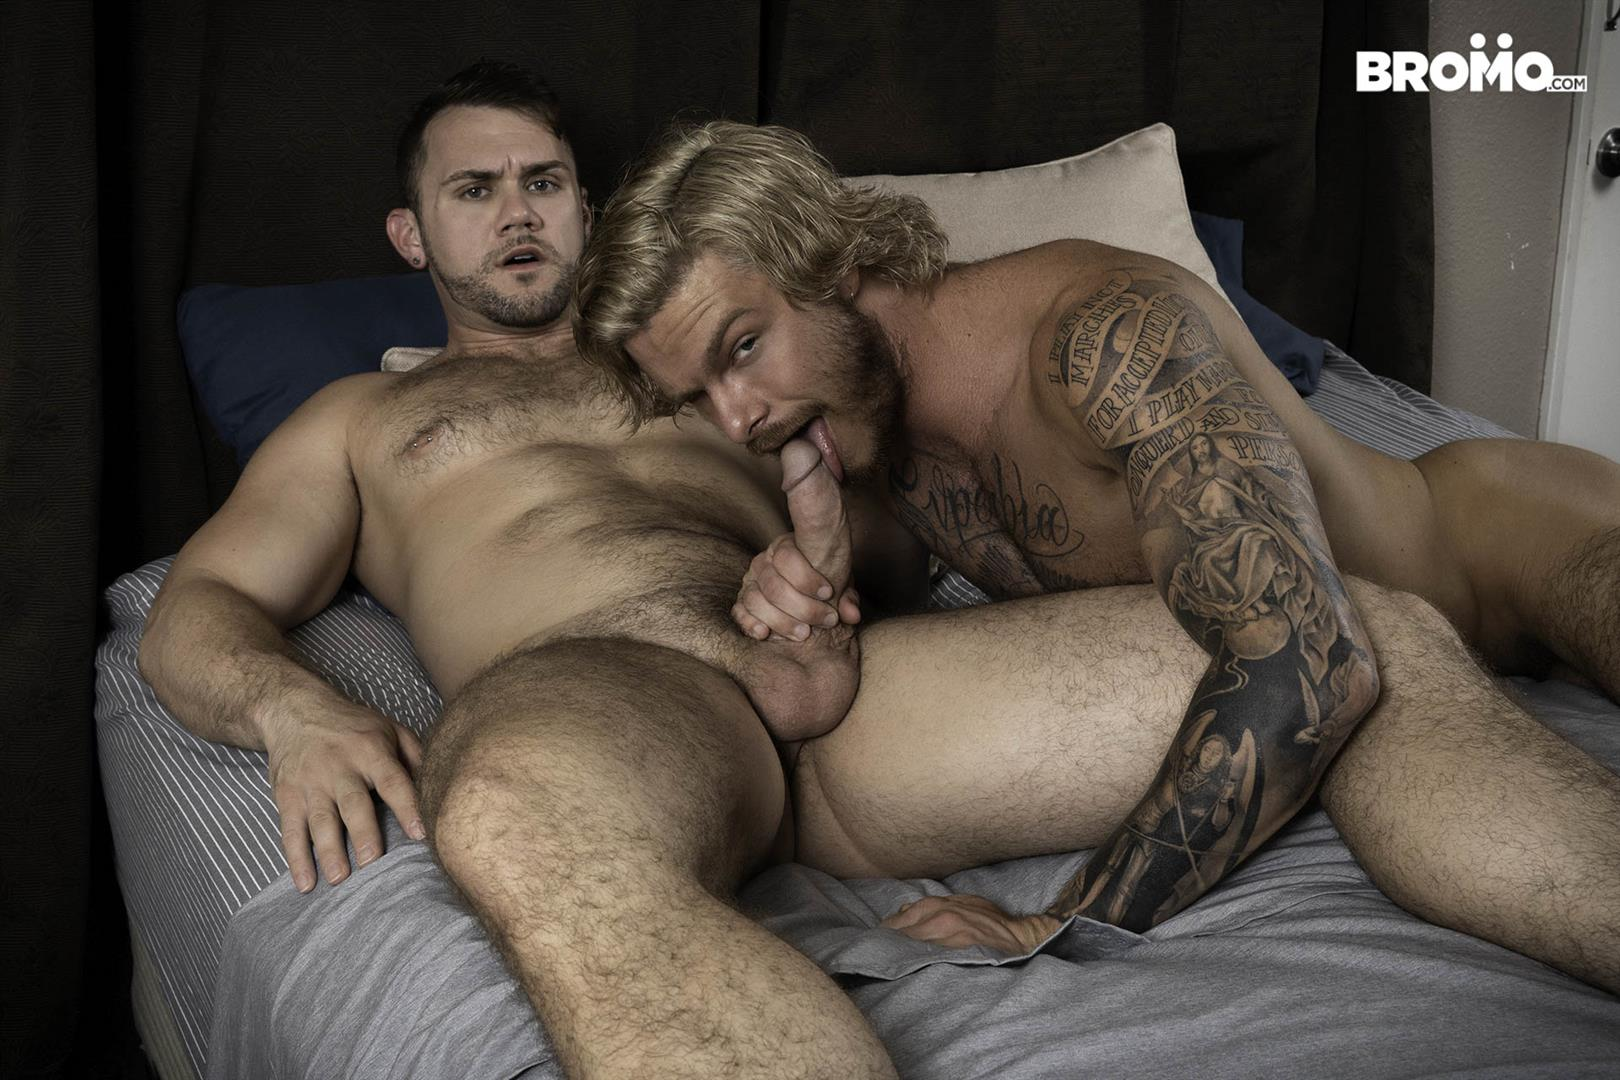 Bromo-Blaze-Austin-and-Blake-Ryder-Big-Cock-Guys-Fucking-Bareback-08 Blaze Austin Gets His Hole Creampied By Blake Ryder